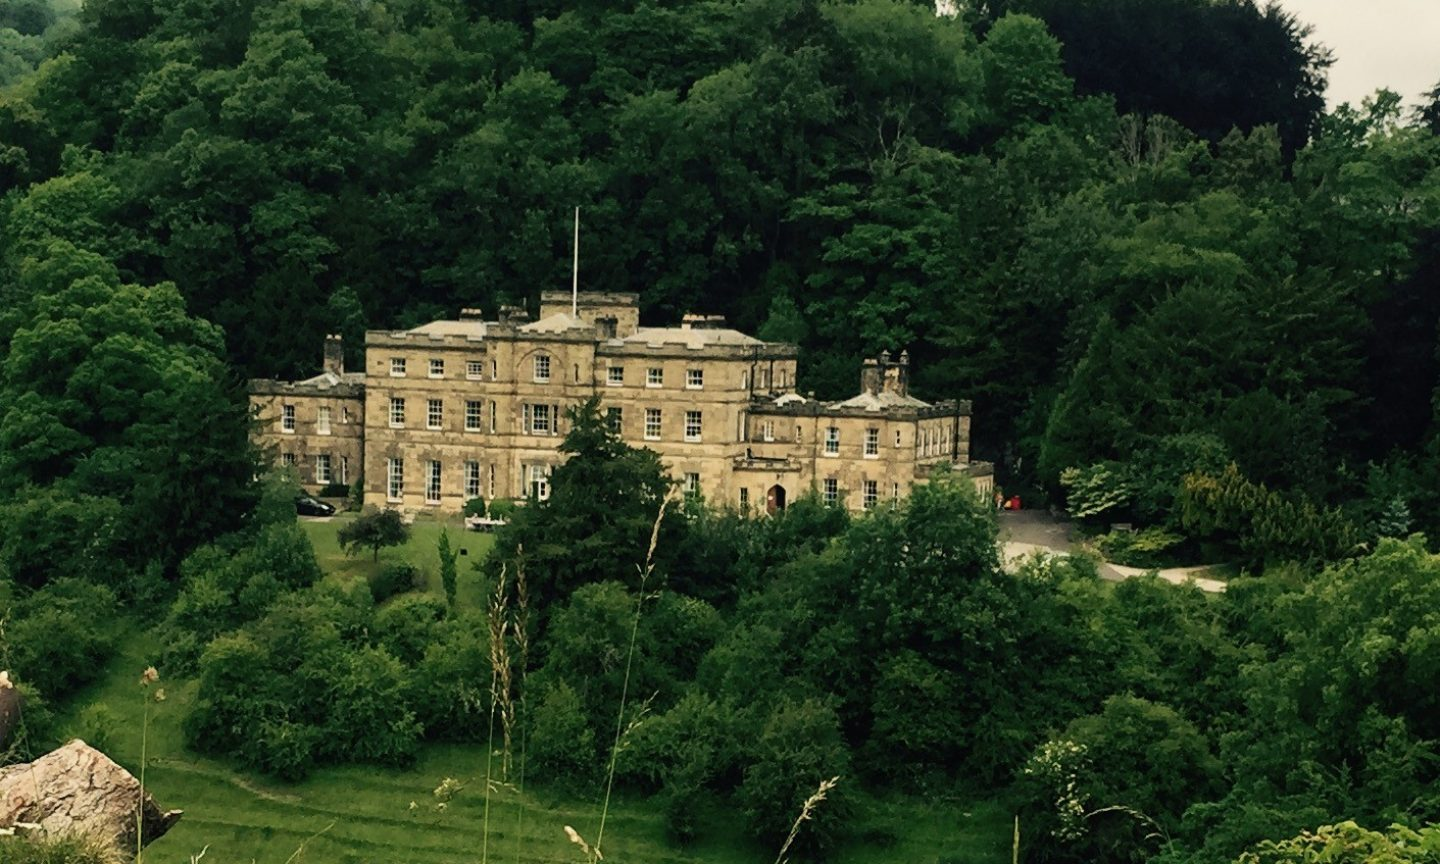 Artist Opportunity: Willersley Castle